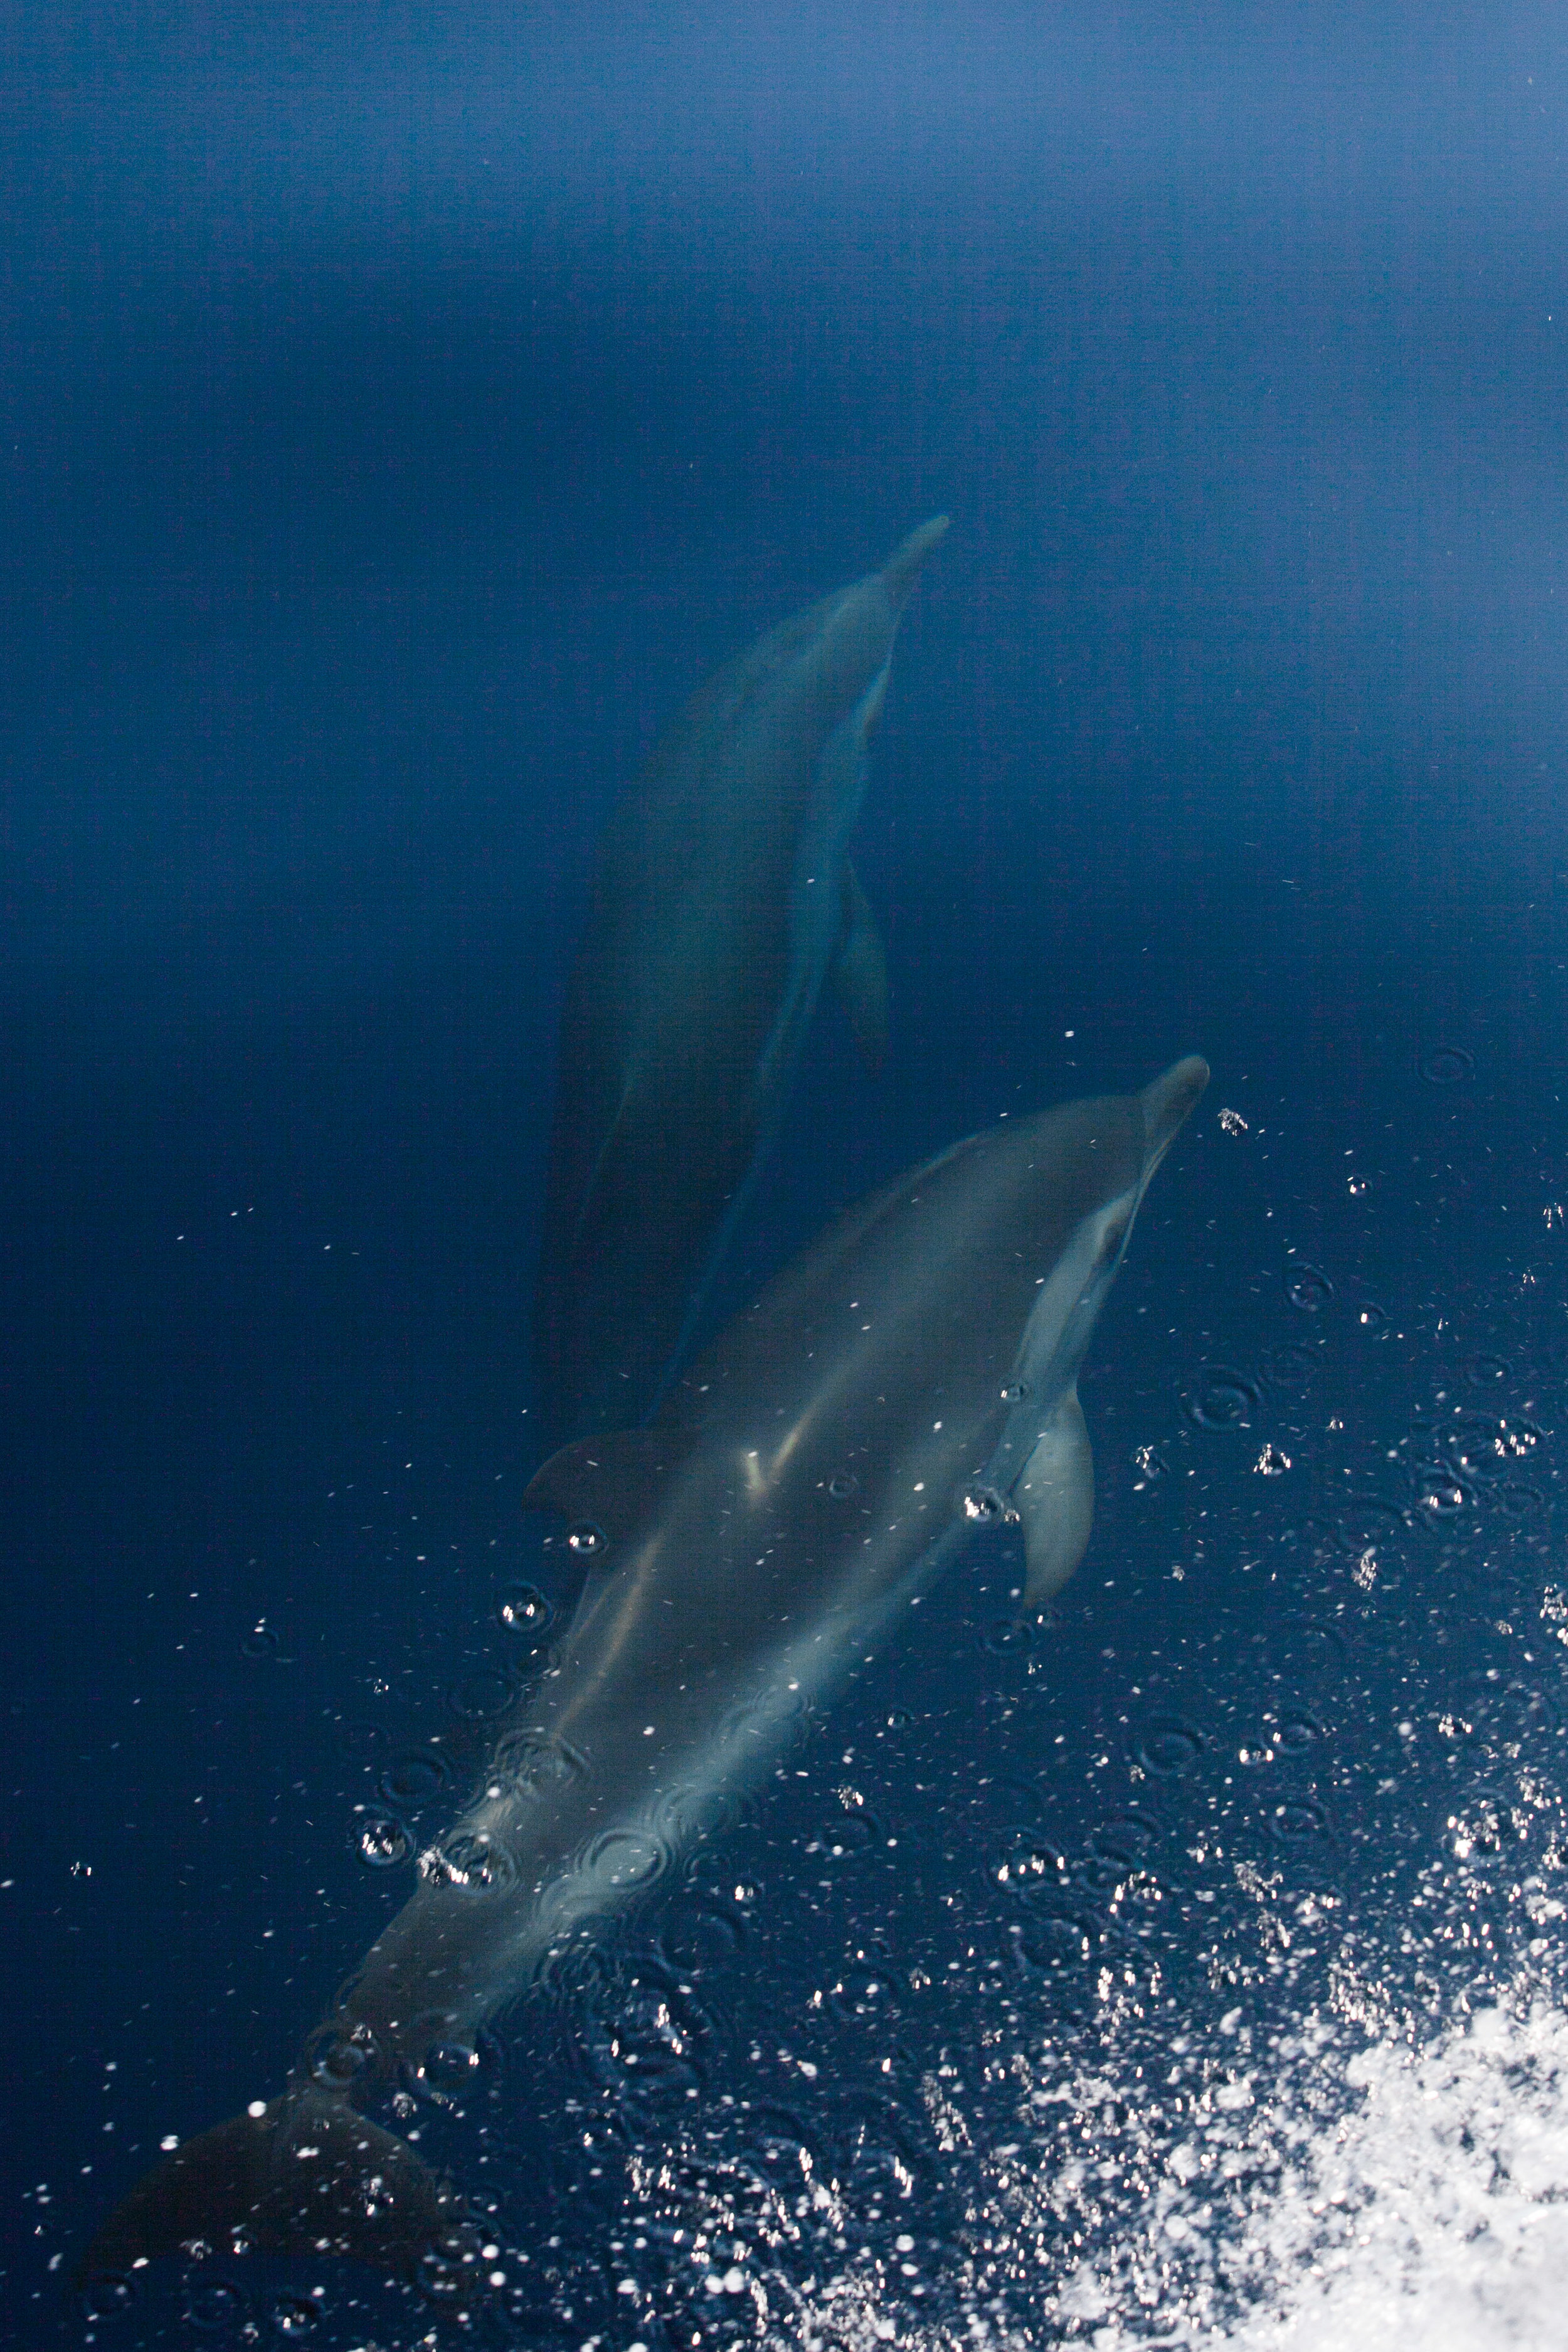 After departing Sanremo, we had a sighting of striped dolphins.